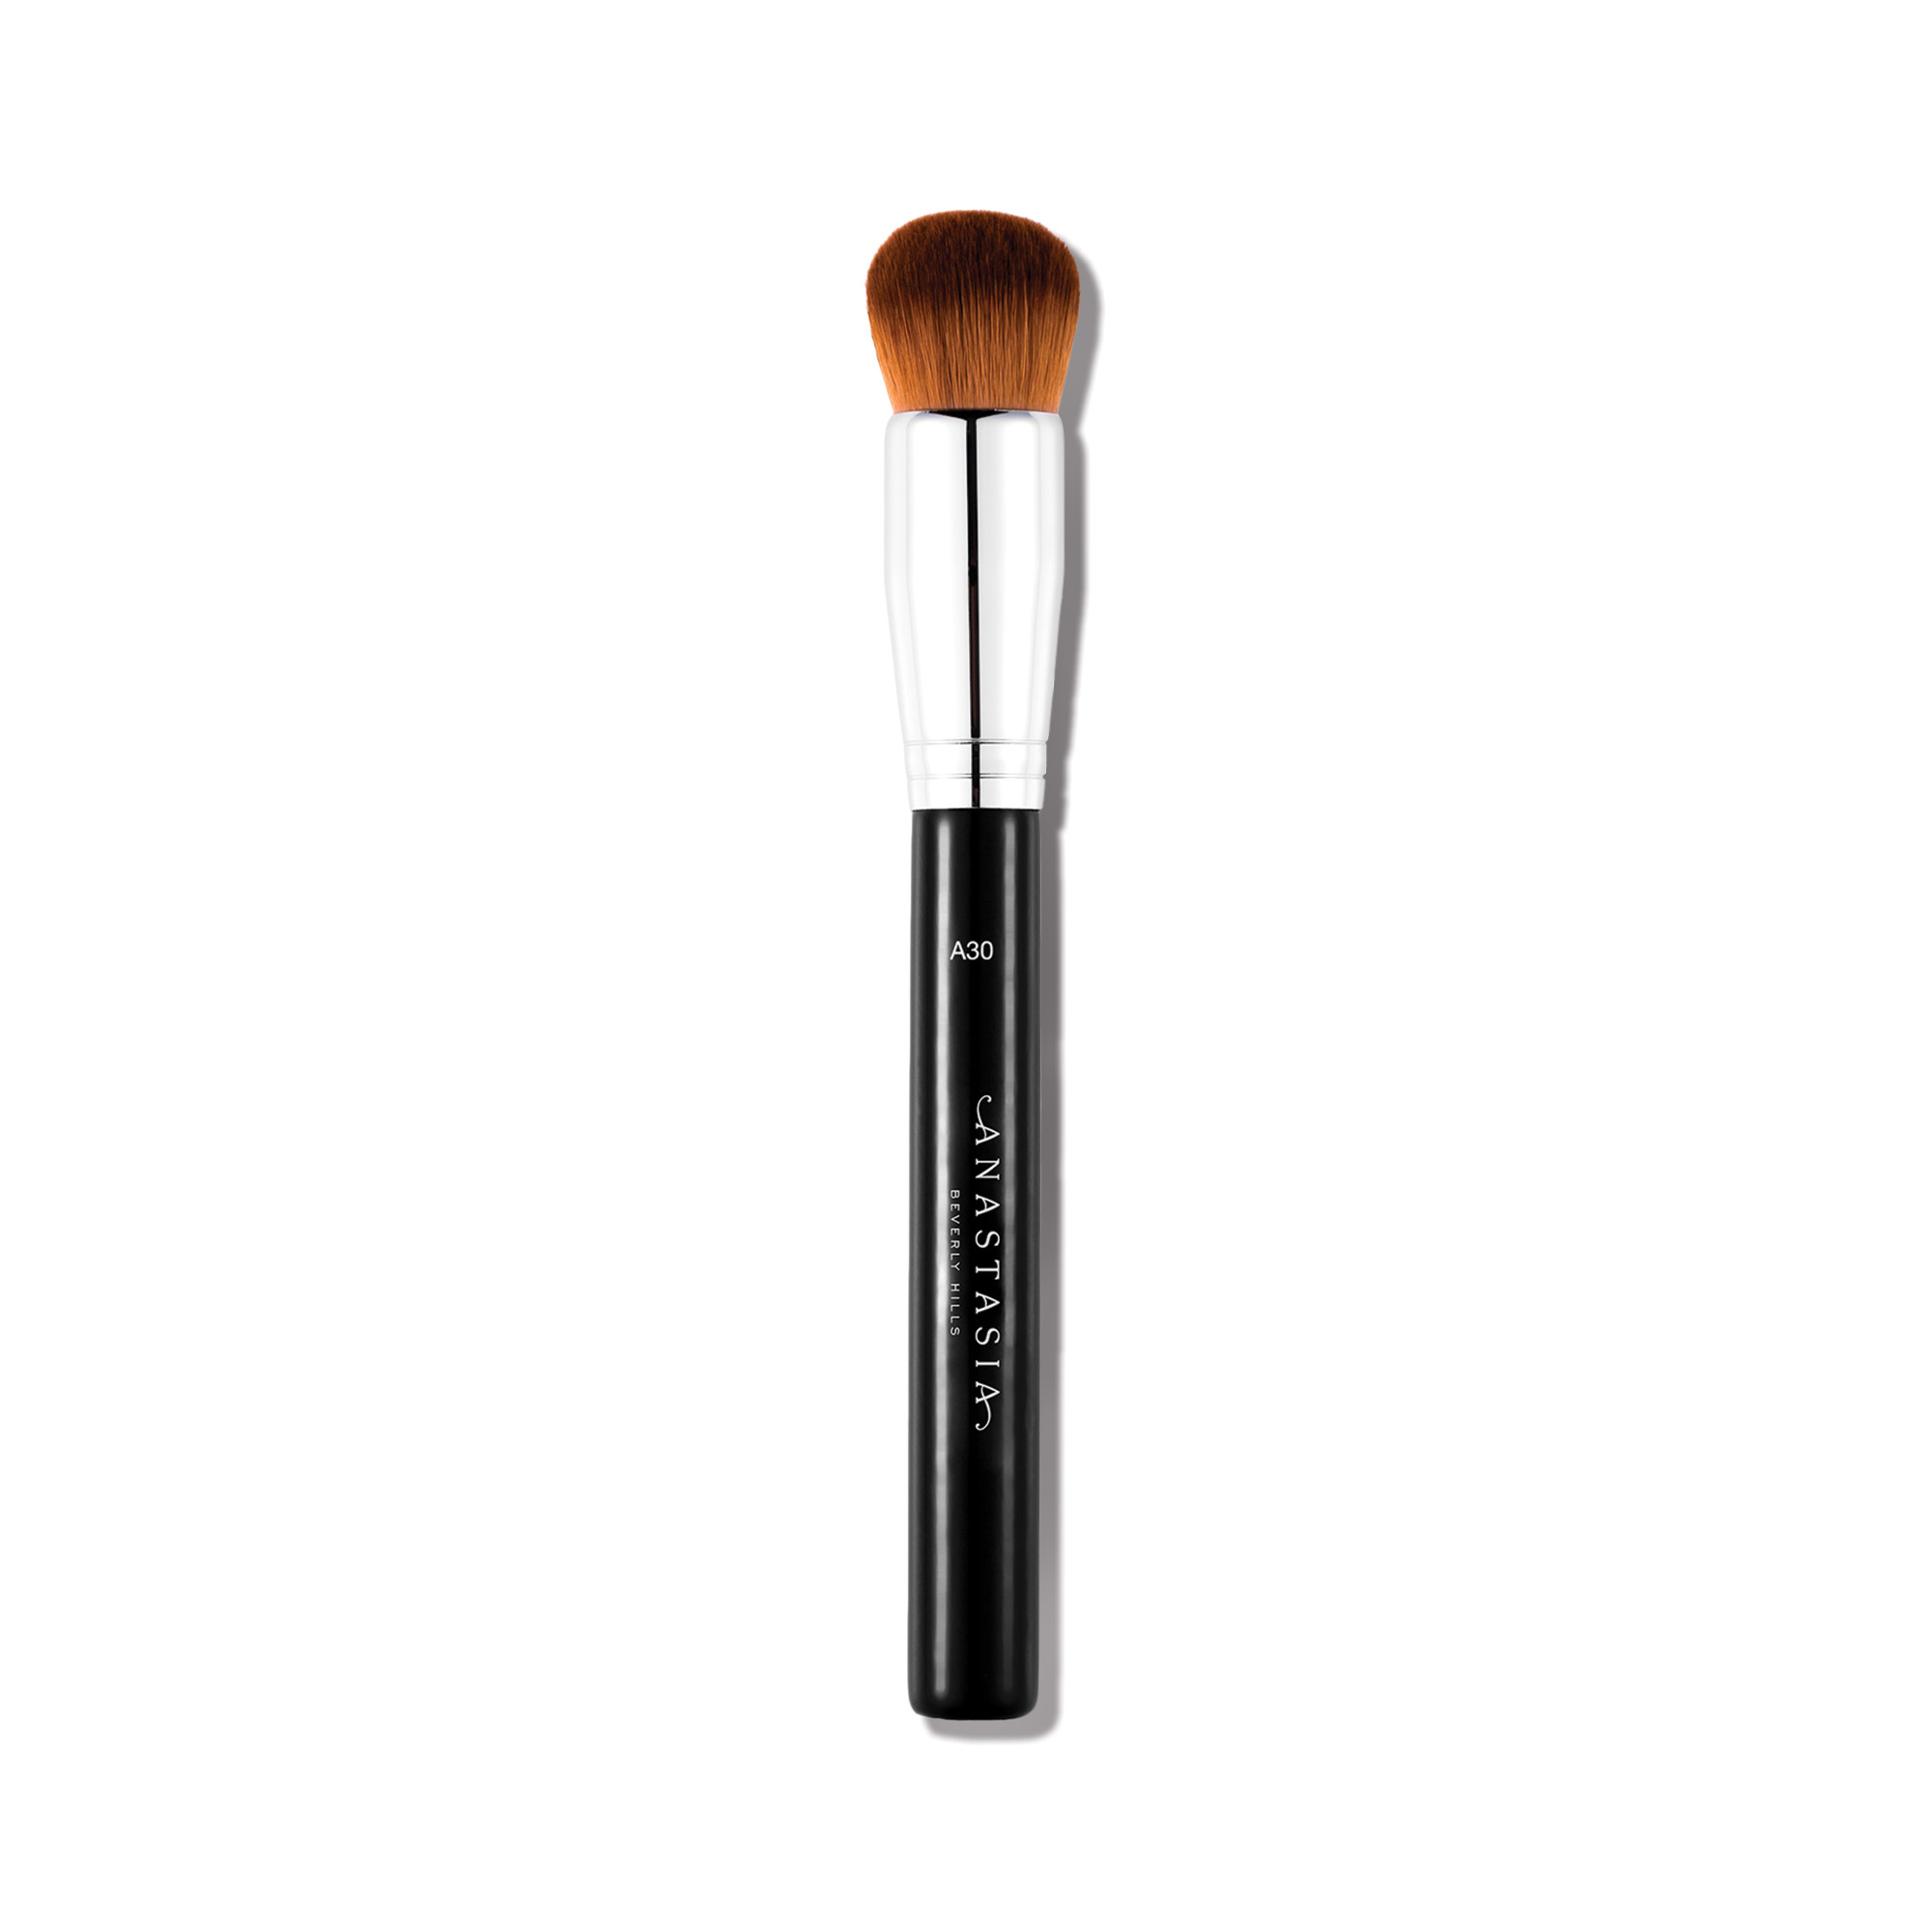 A30 Pro Brush - Domed Kabuki Brush